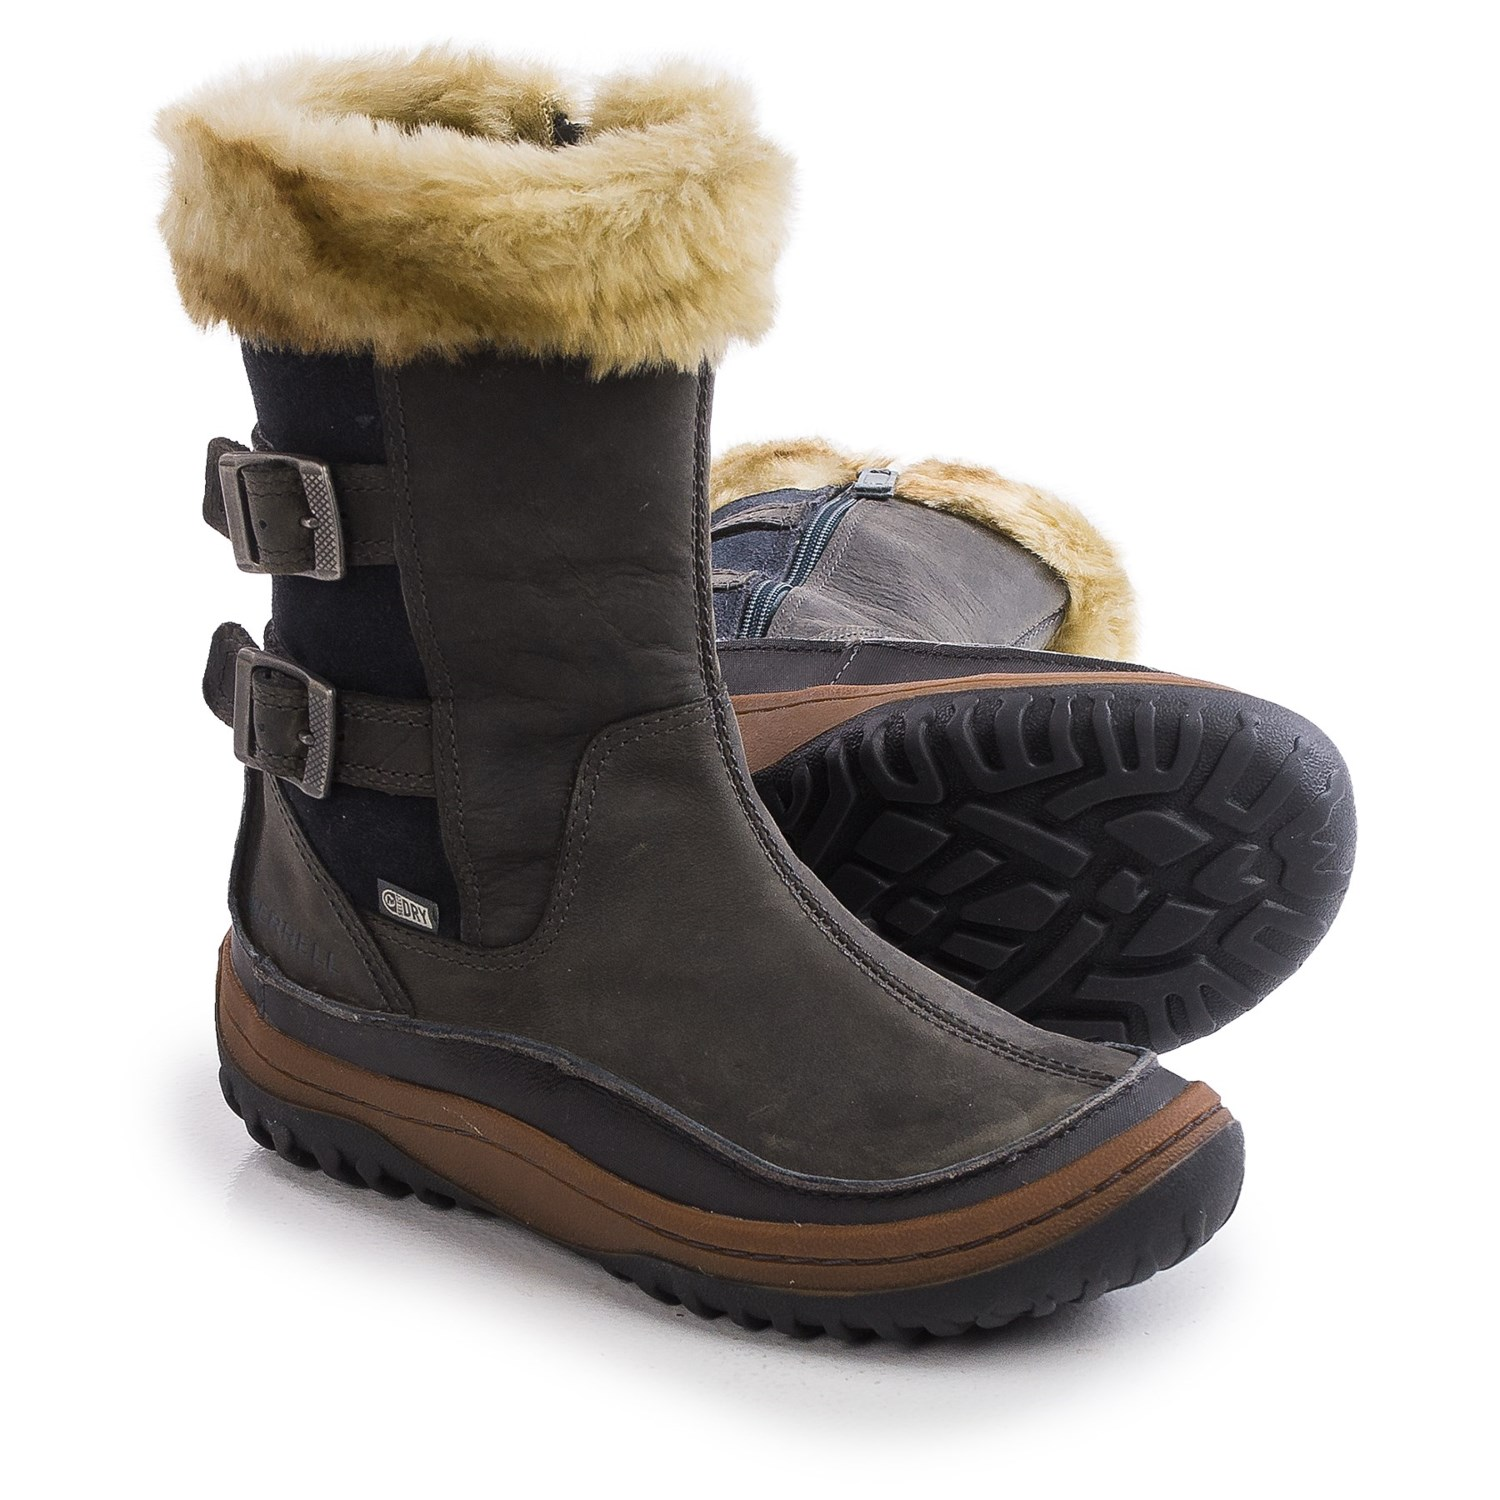 merrell winter boots waterproof insulated for